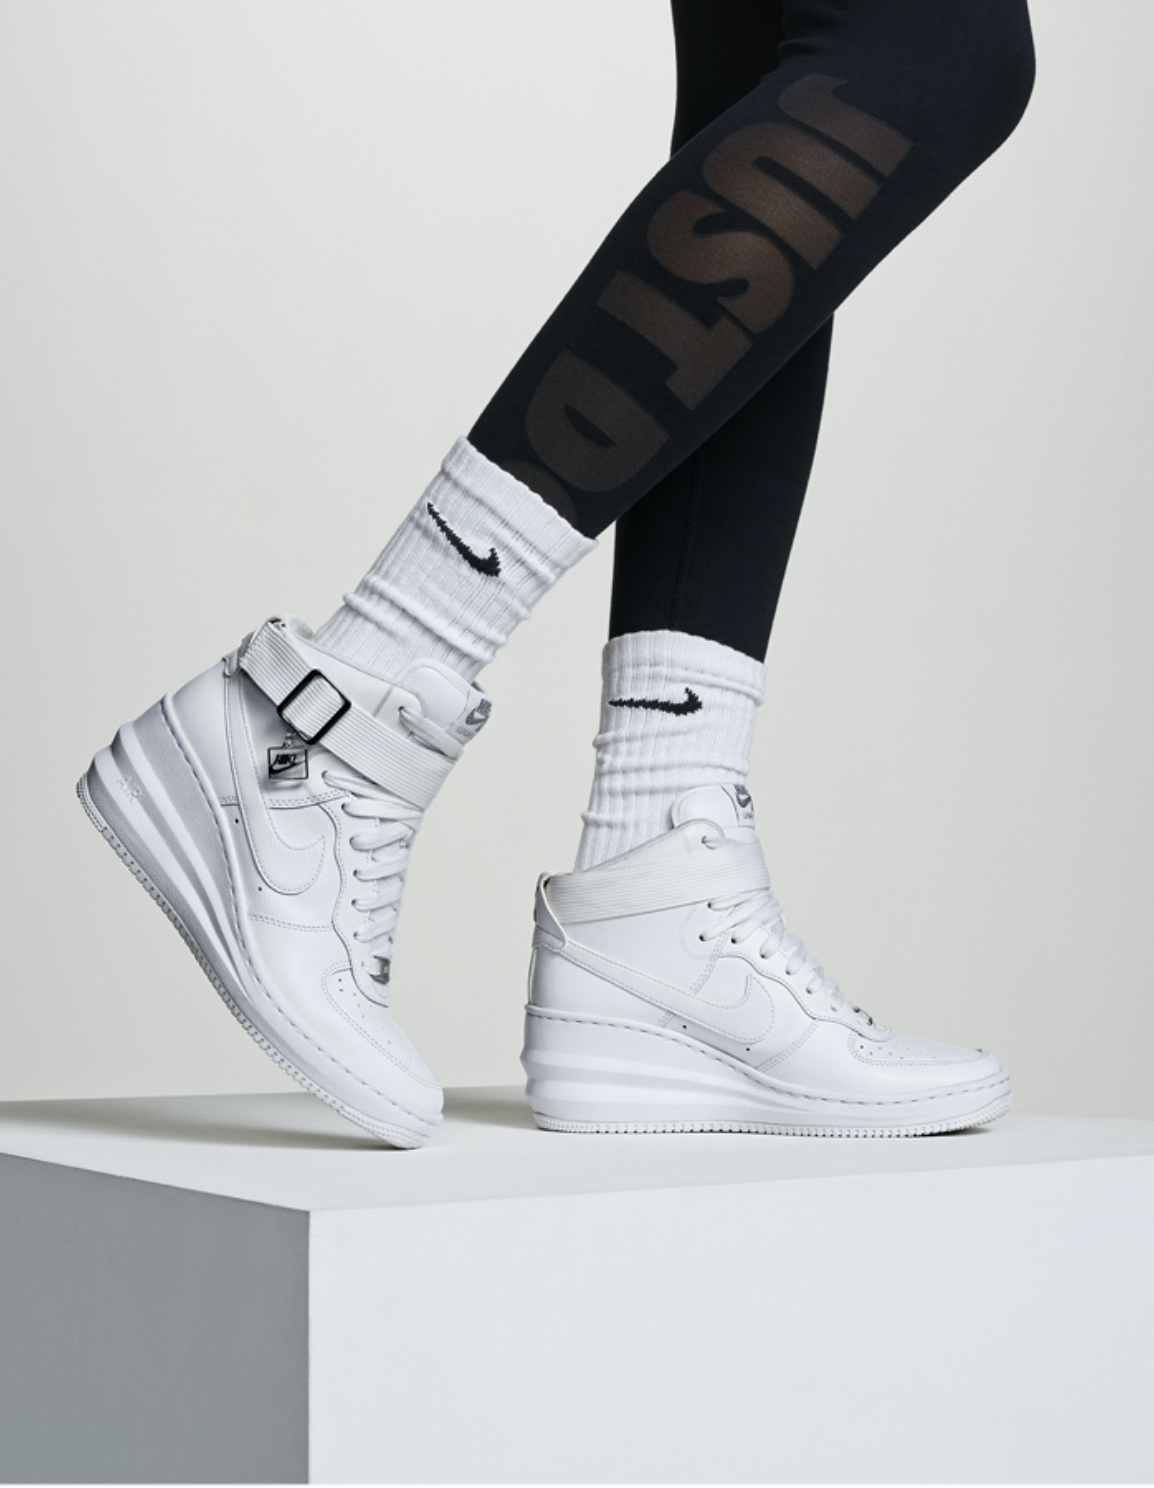 Nike Women's Style Guide Holiday  |  Art Direction : Lisa Hopey |  Photo:  Mel Bles